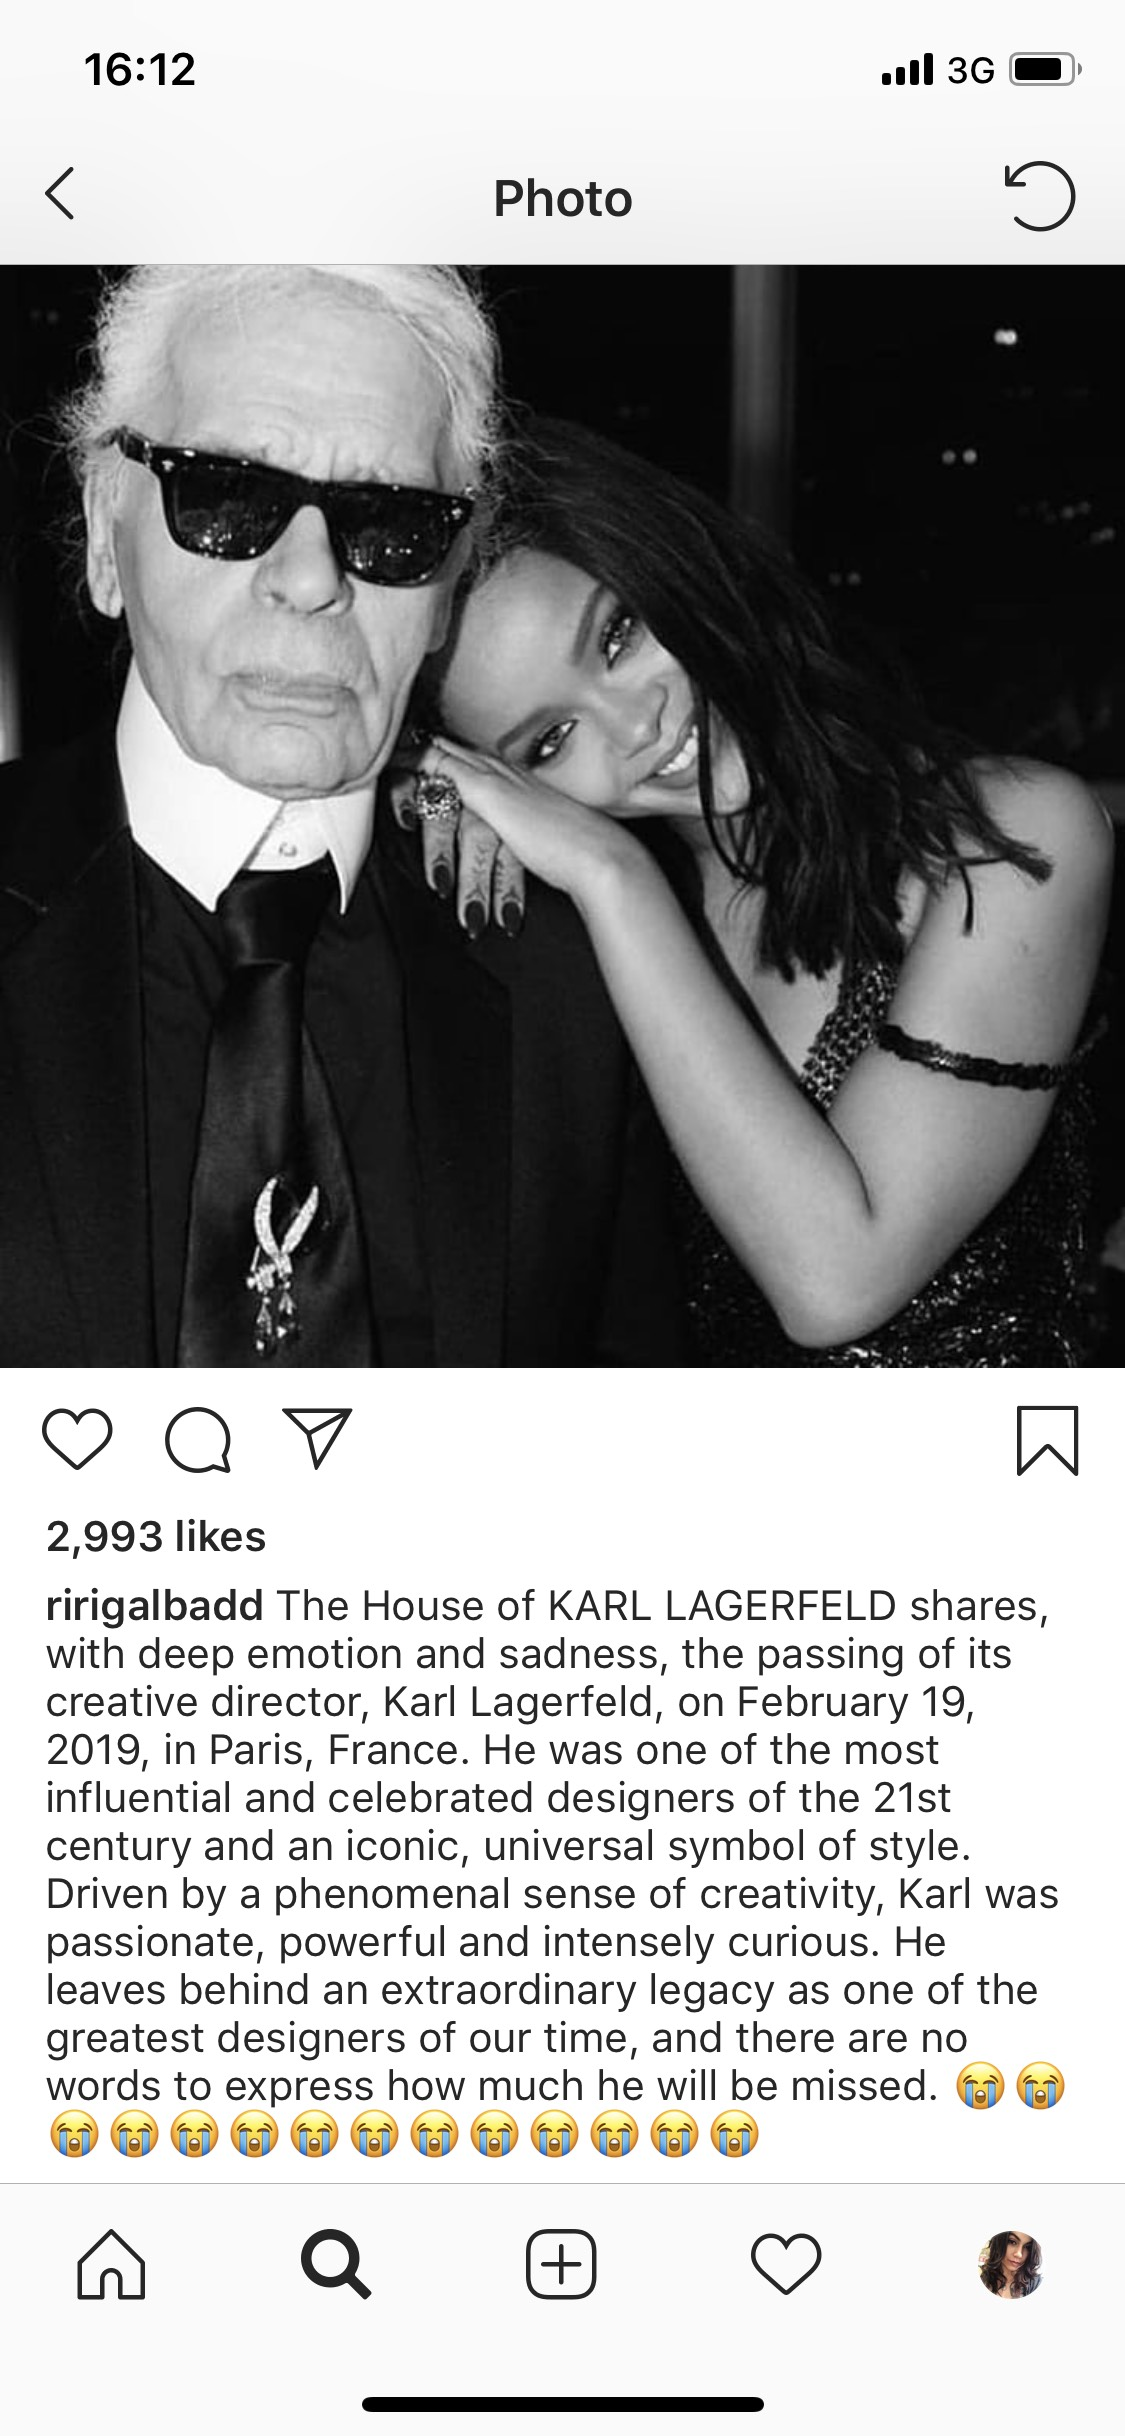 influencers-comment-karl-lagerfeld-death-12.jpg